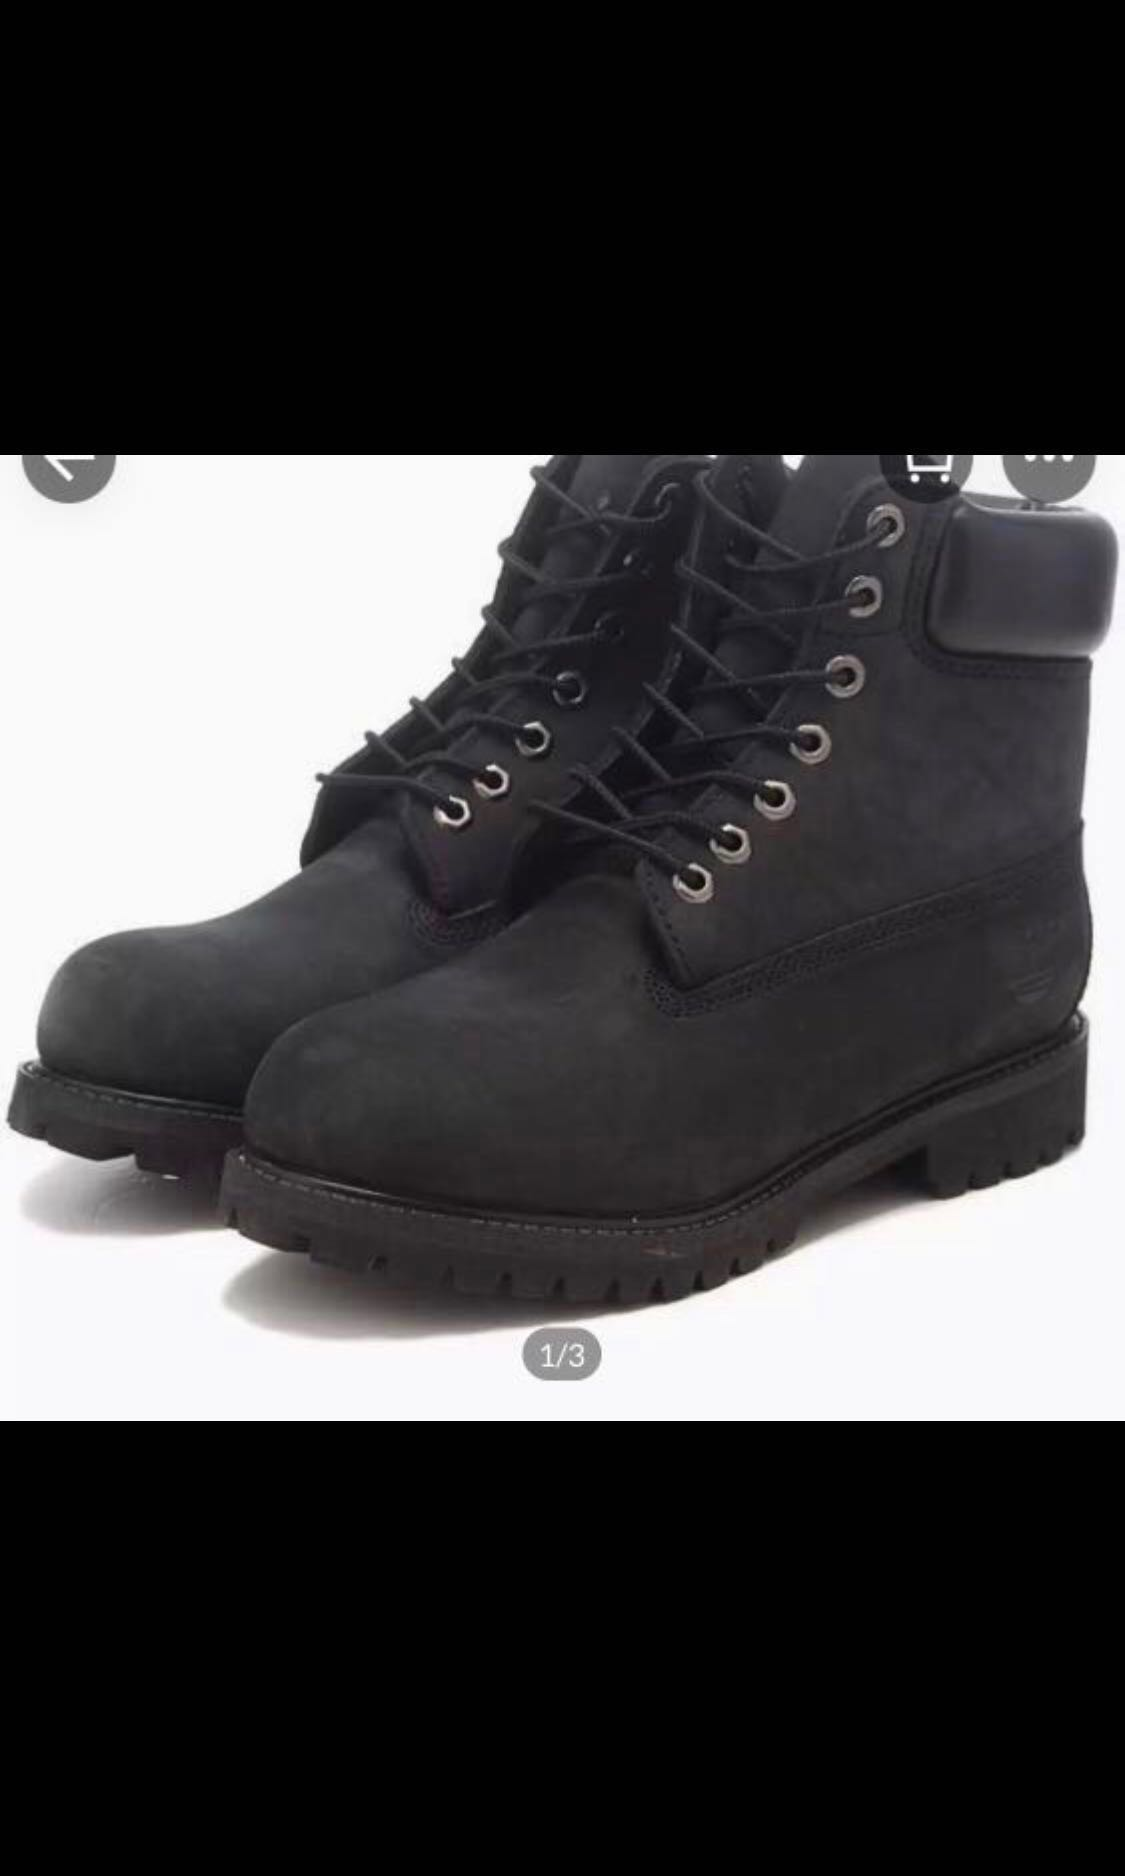 add43cfd80c4 Authentic Timberland Winter Boots EUR36